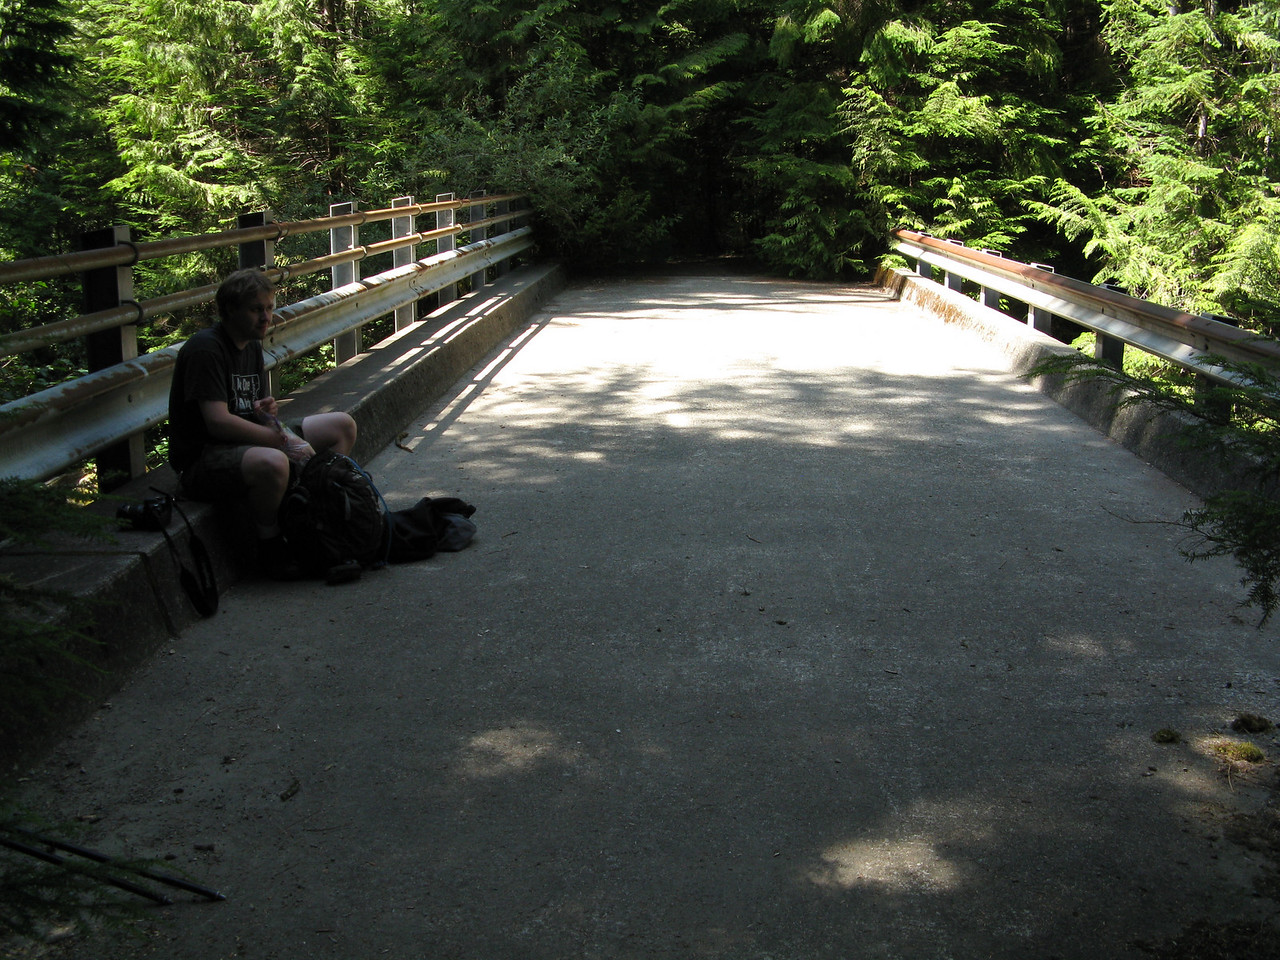 Our destination was Big Creek Falls, which was next to this car bridge at 5 miles from the trailhead.  We gained only 600 feet in gradual elevation.  This bridge was built in 1965 and has been abandoned since about the early 1980s.